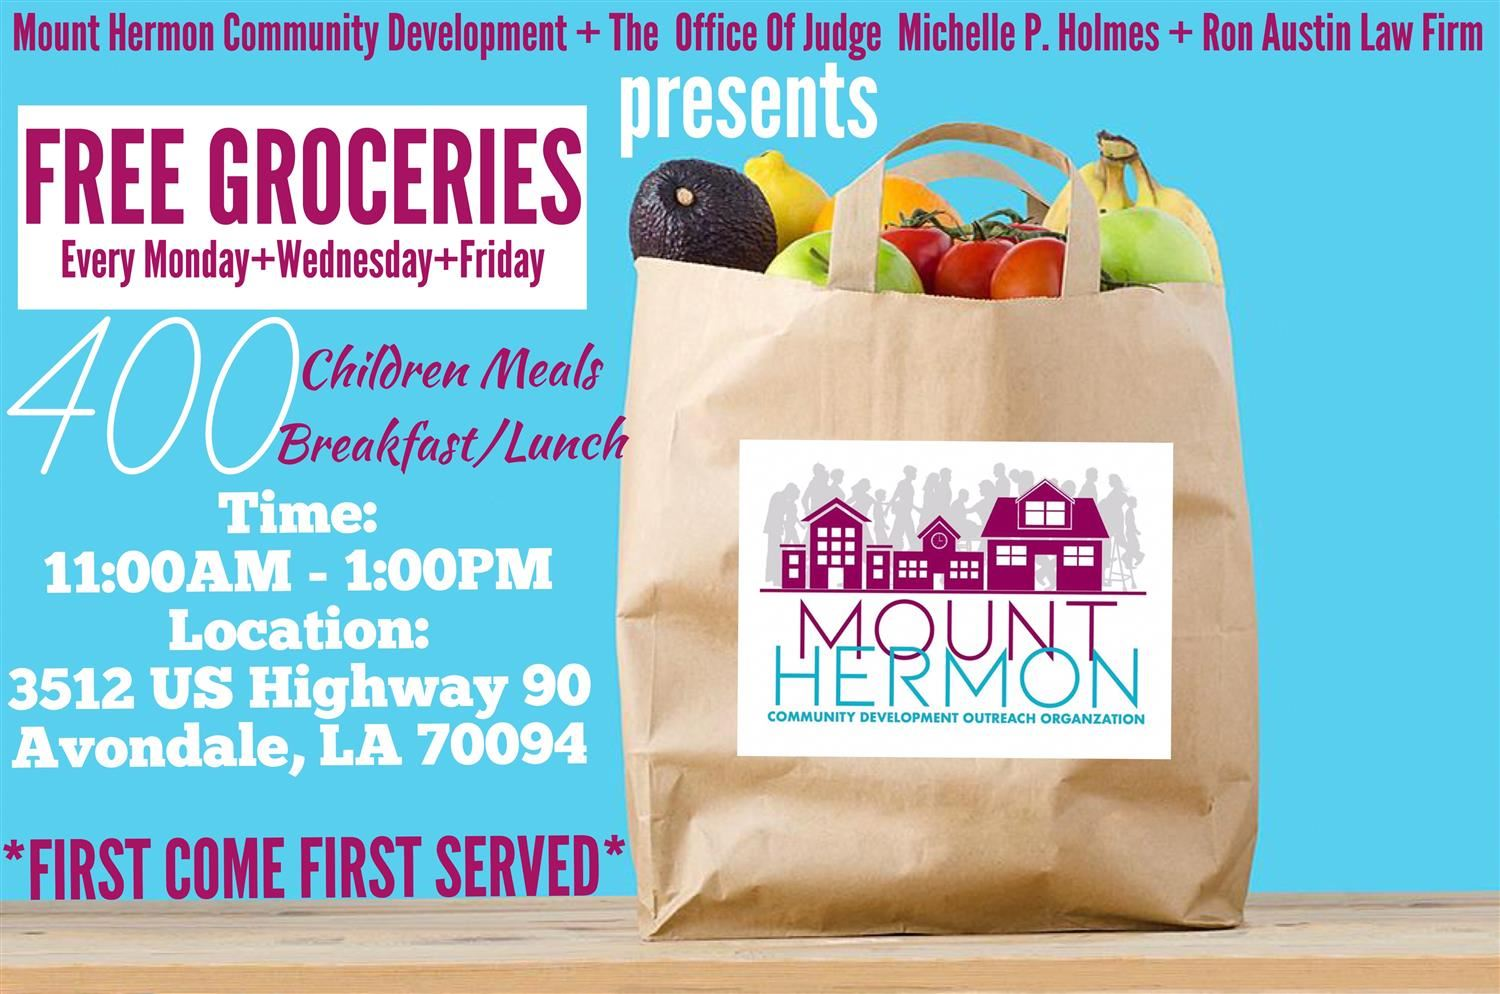 FREE FOOD DISTRIBUTION GIVEAWAY